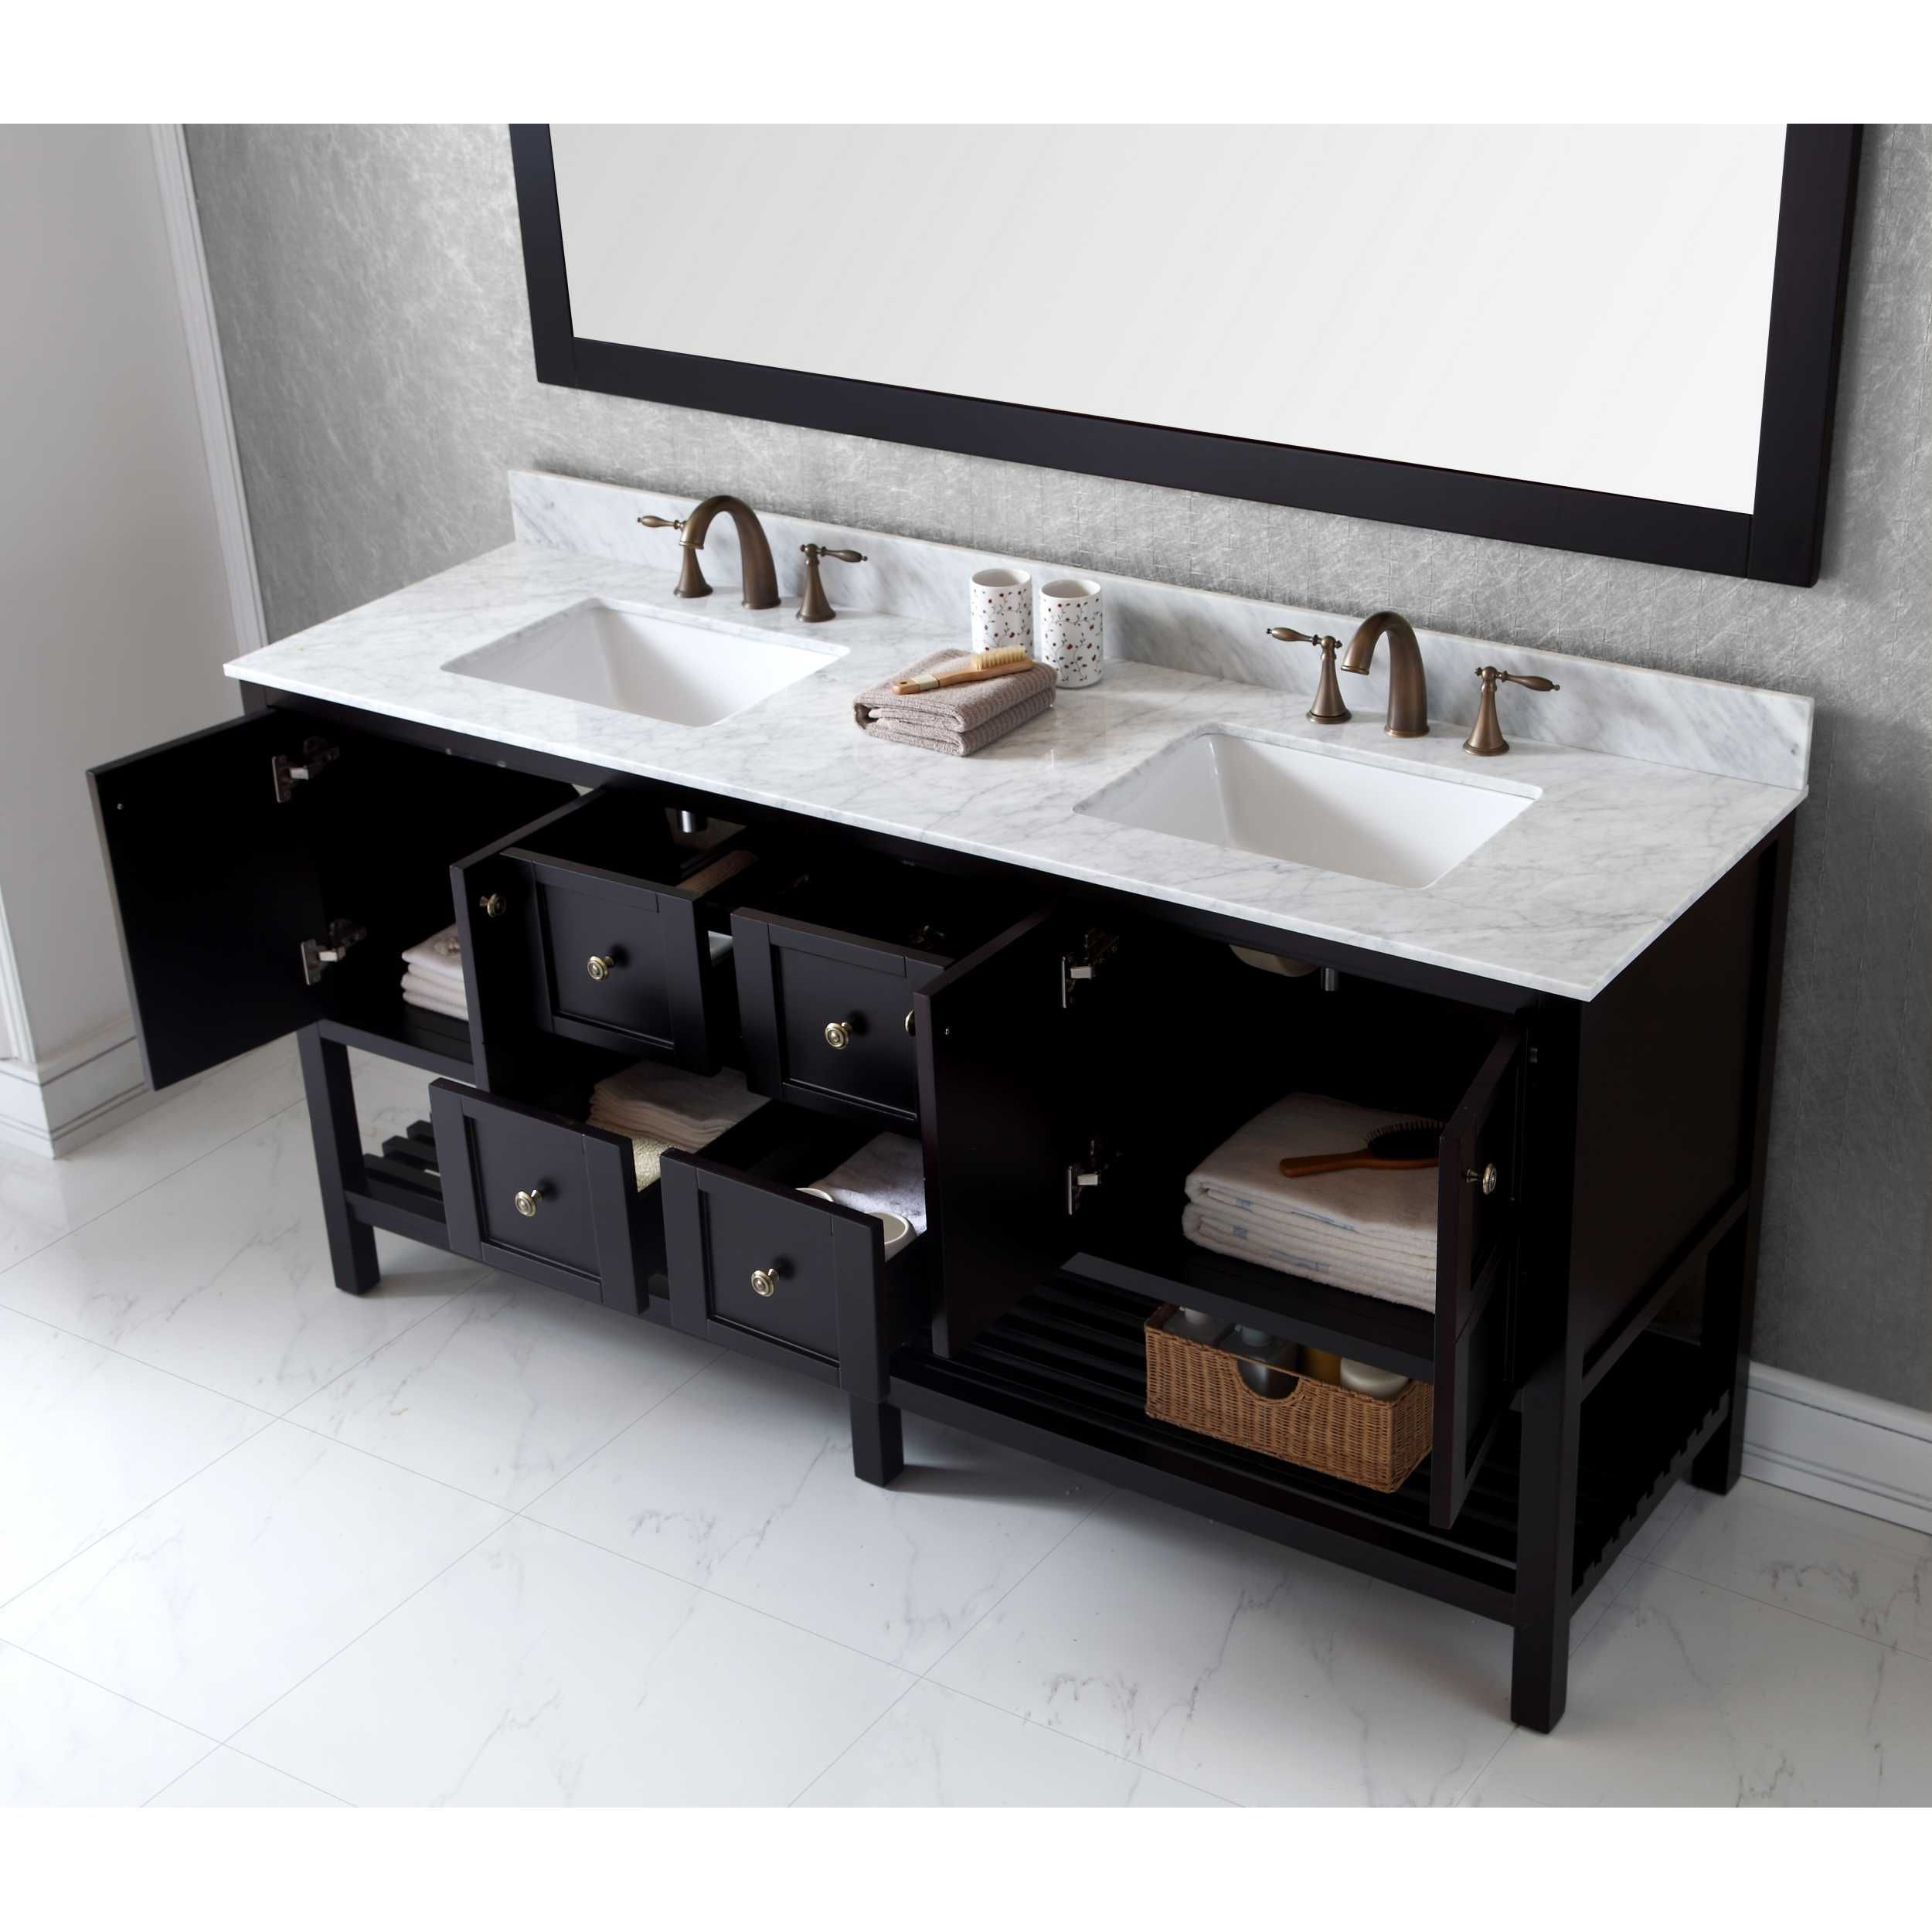 Virtu USA Winterfell 72-inch Double Bathroom Vanity Set w/ Faucet ...